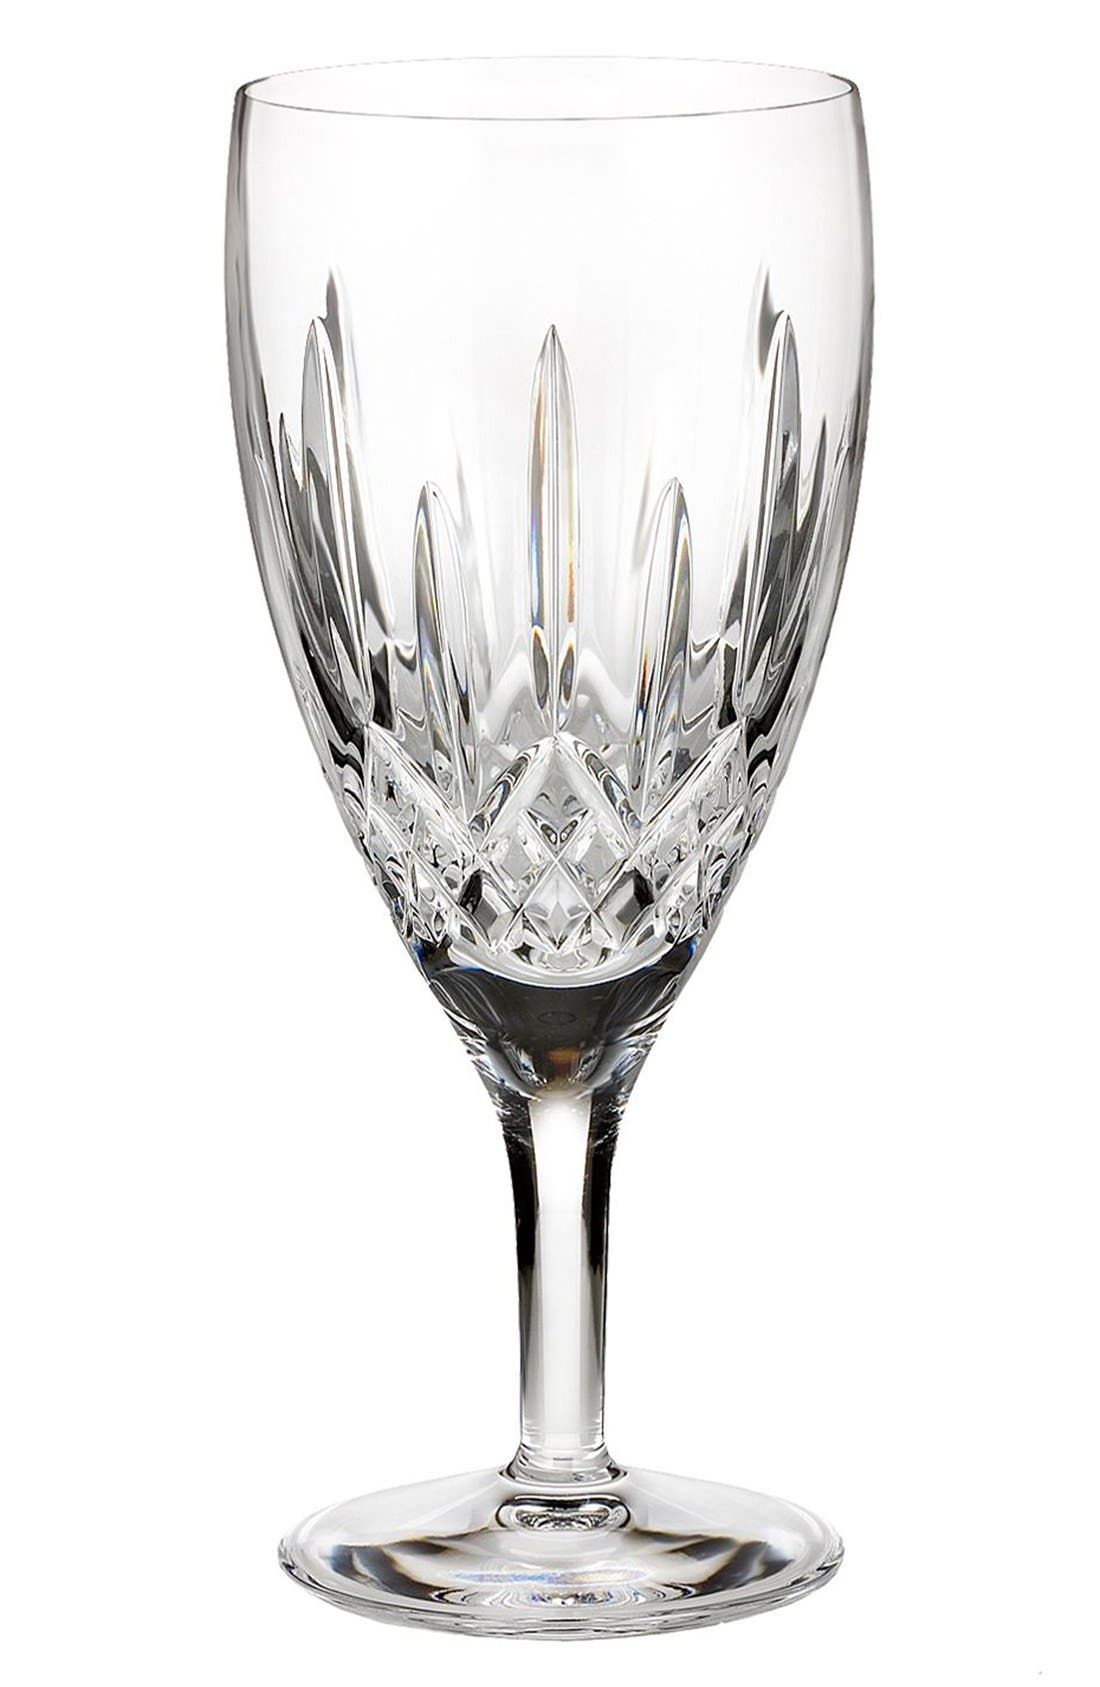 Alternate Image 1 Selected - Waterford 'Lismore Nouveau' Lead Crystal Iced Beverage Glass